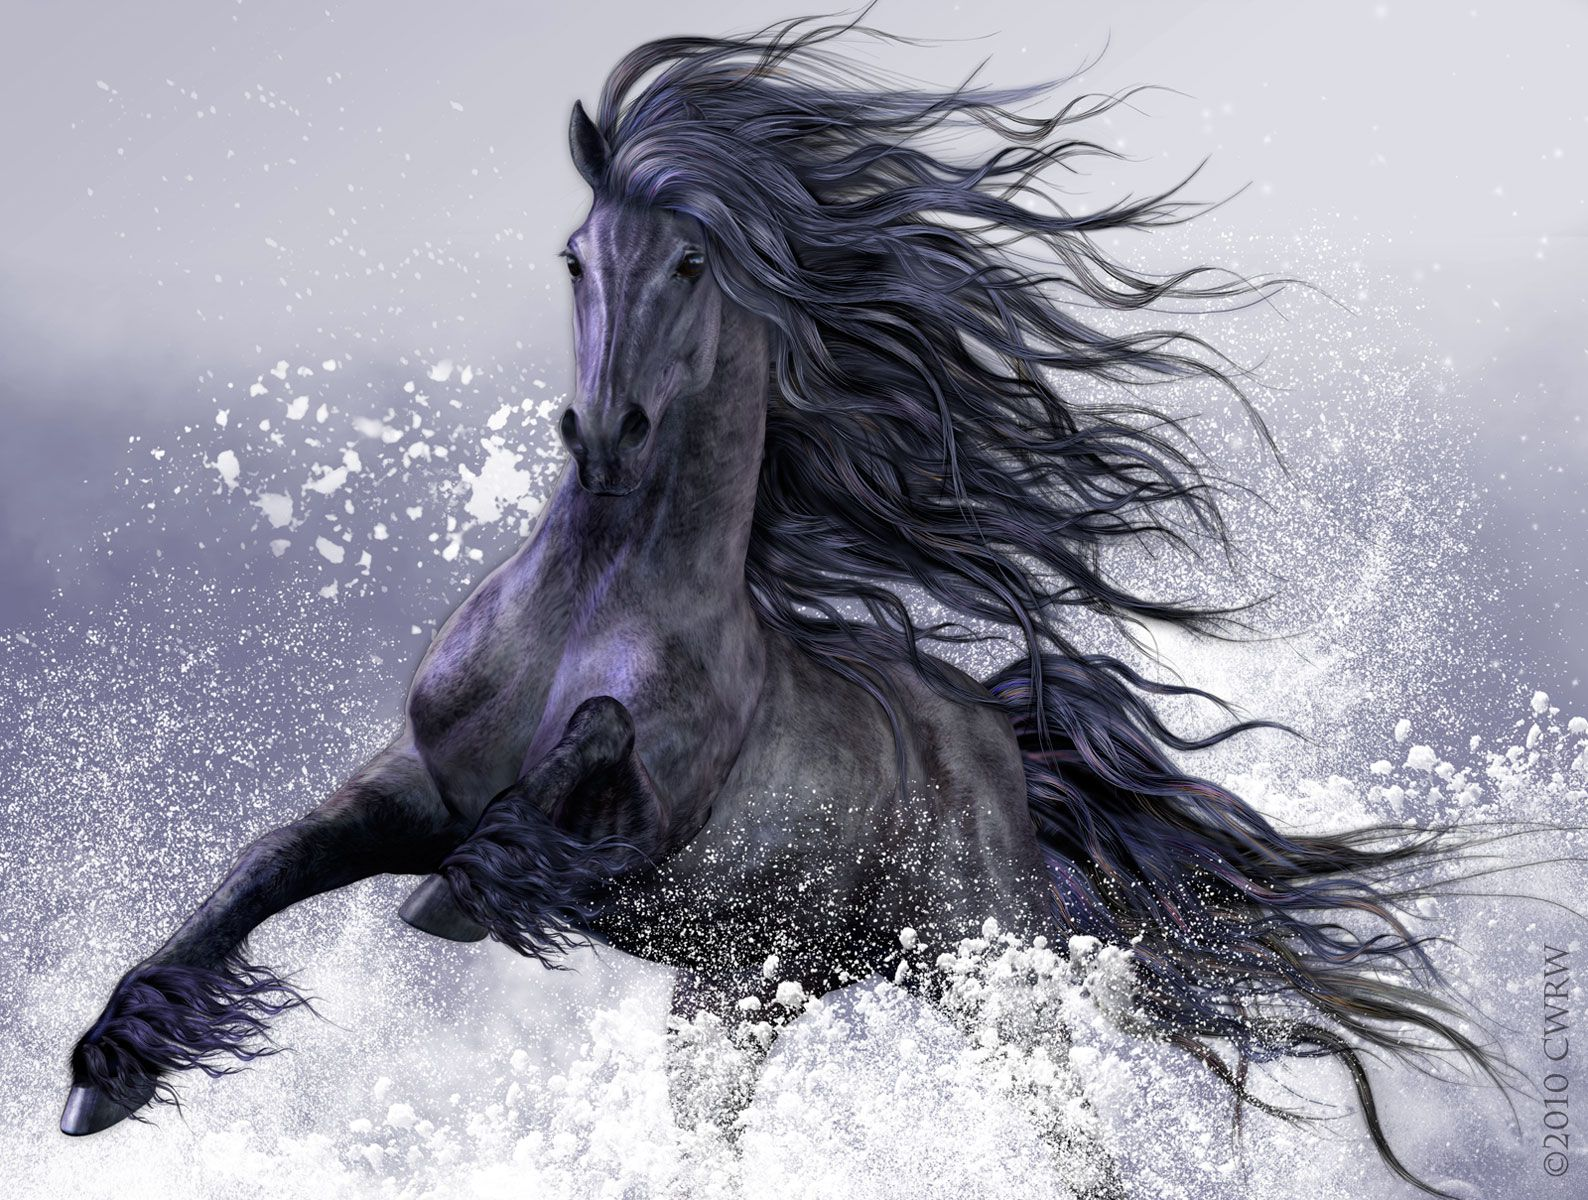 Amazing Wallpaper Horse Watercolor - 5e7ff25d83fe72ee51a05eda870020a3  Perfect Image Reference_236013.jpg